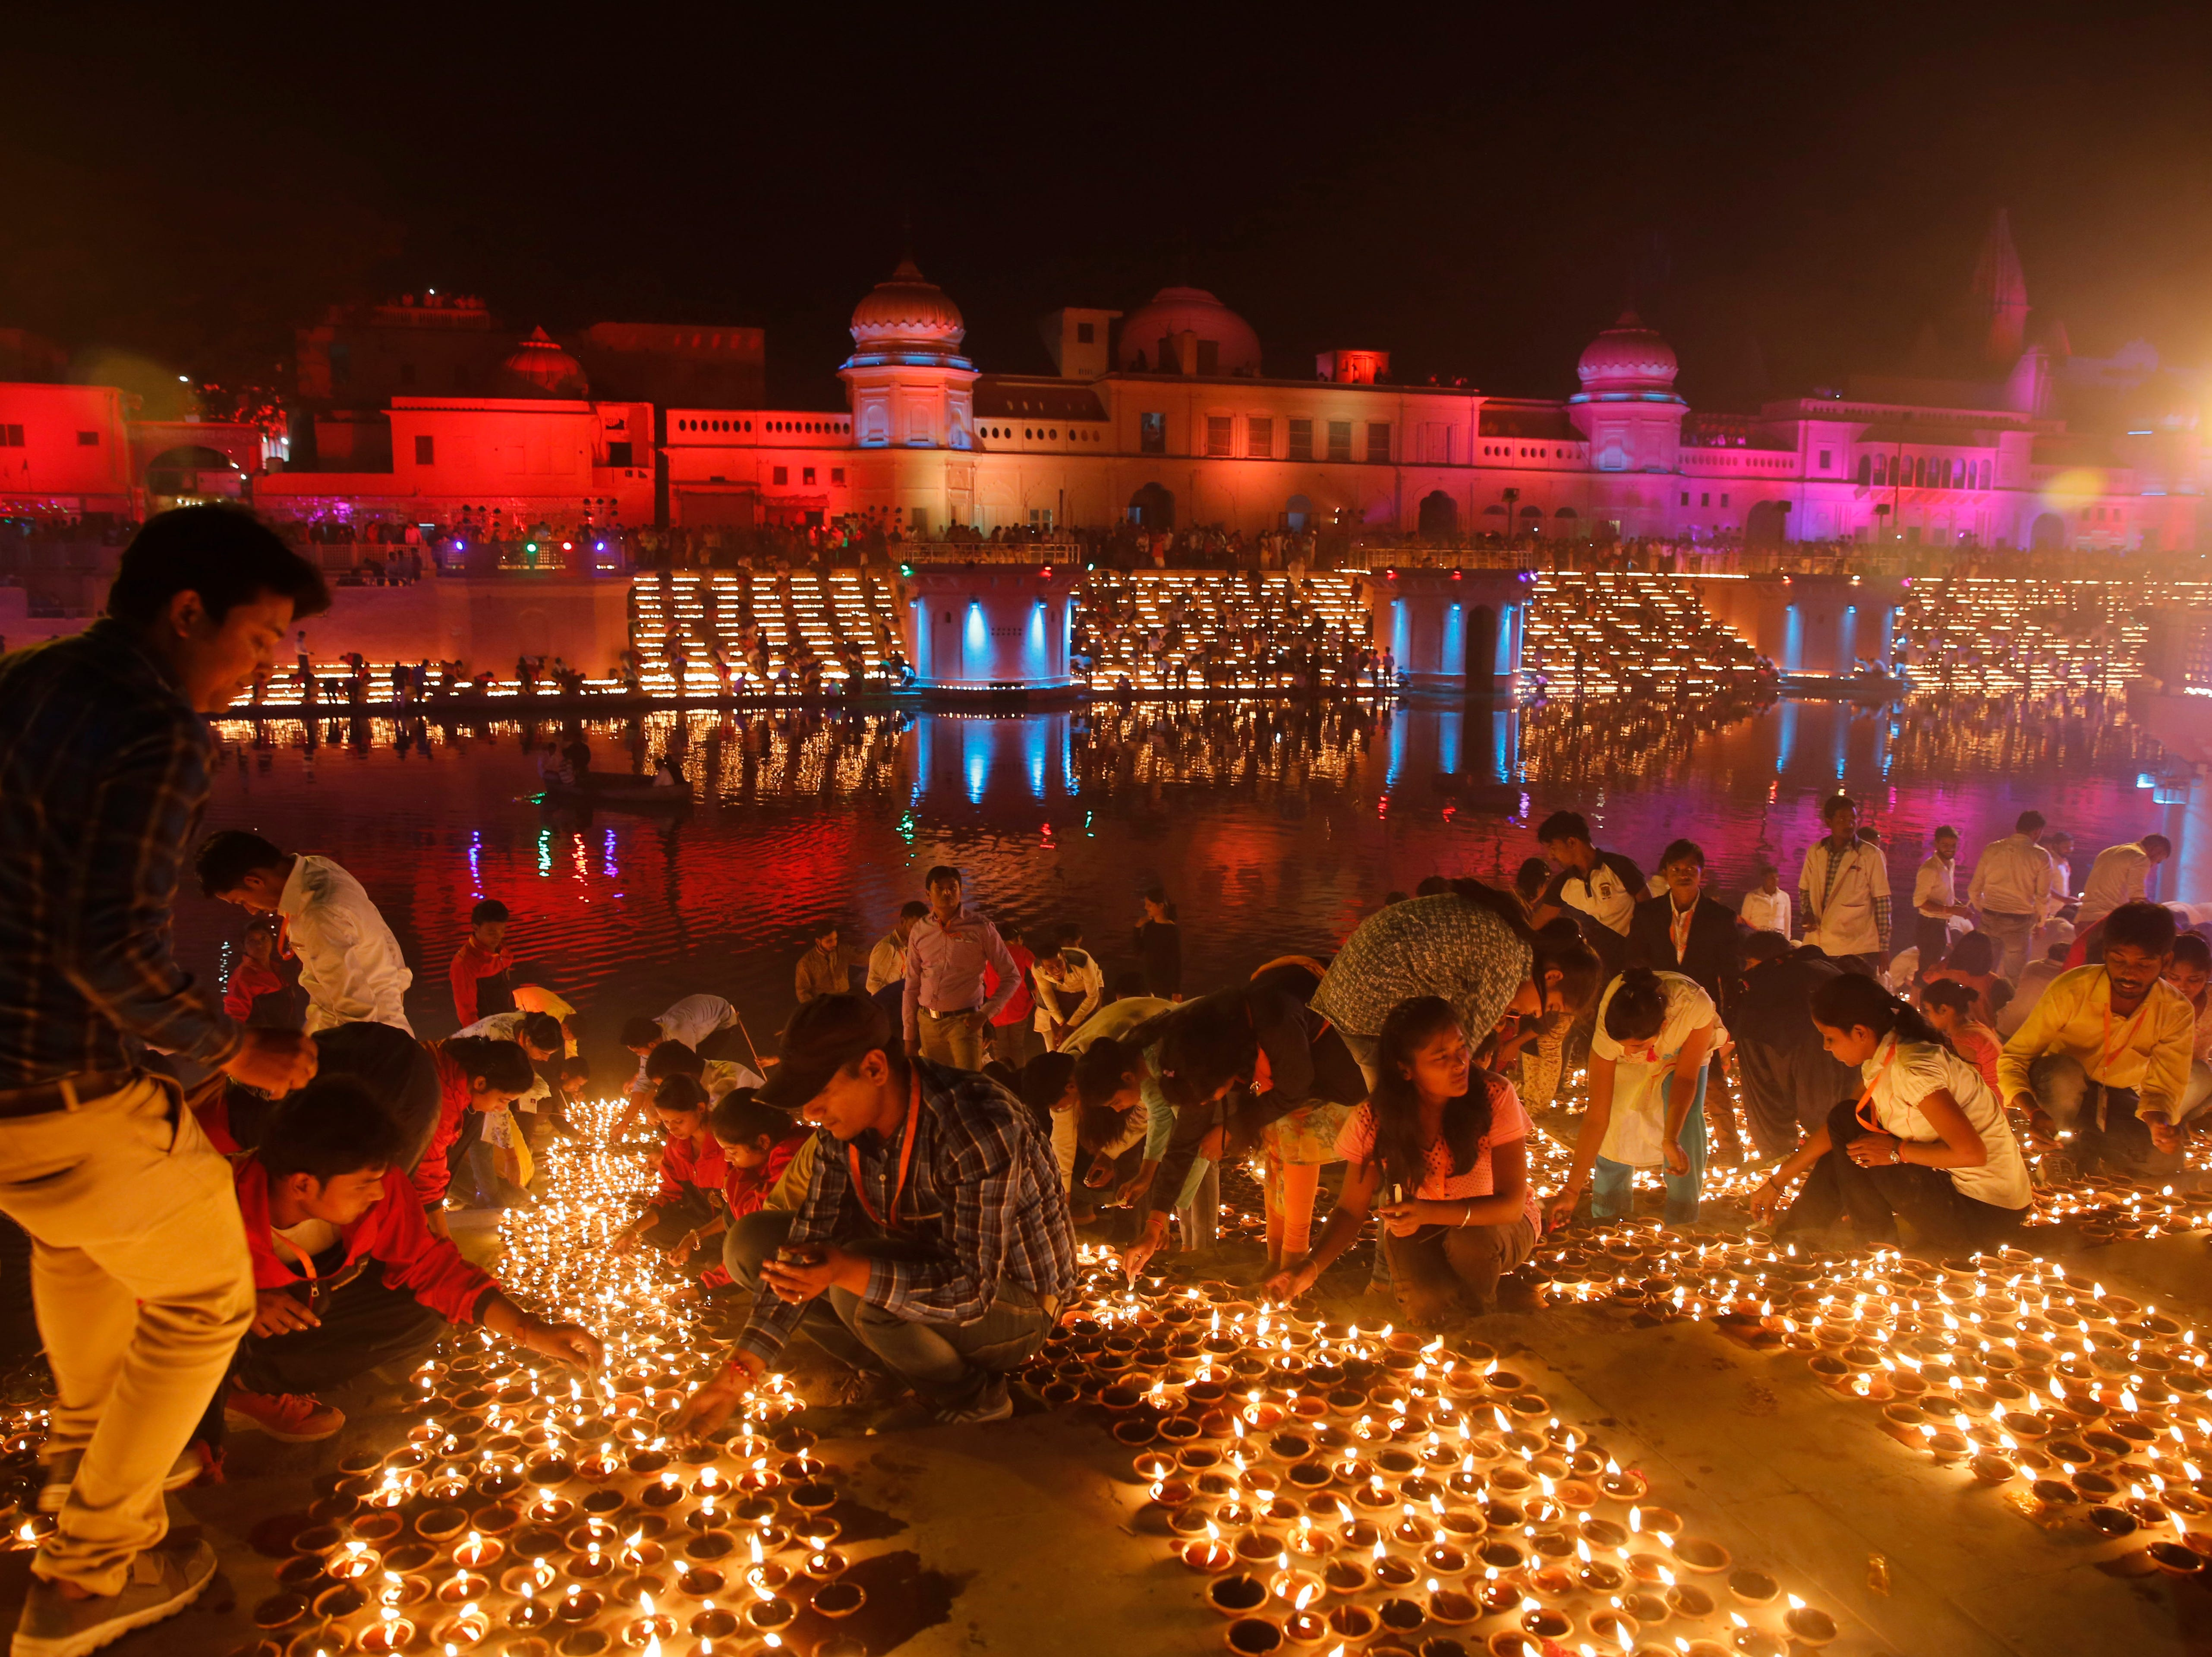 Devotees light earthen lamps on the banks of the River Sarayu as part of Diwali, the Hindu festival of lights celebrations in Ayodhya, India, India, Tuesday, Nov. 6, 2018. The northern Indian city of Ayodhya has broken a Guinness World Record after lighting 300,150 earthen lamps.